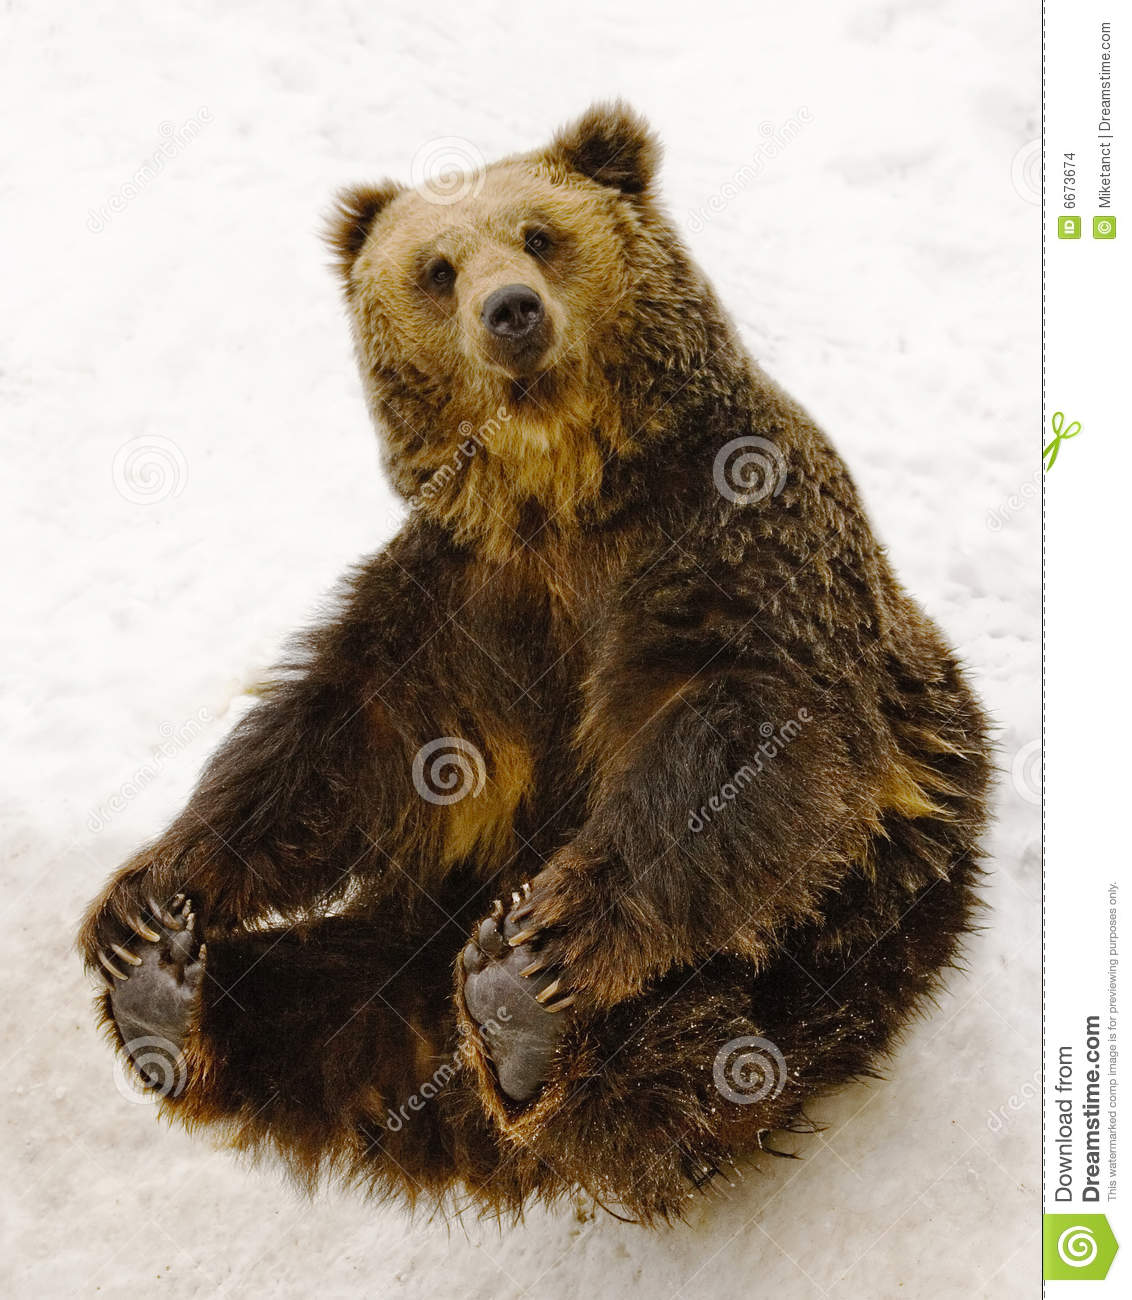 Sitting Bear Stock Photo Image Of Grizzly Lazy Brown